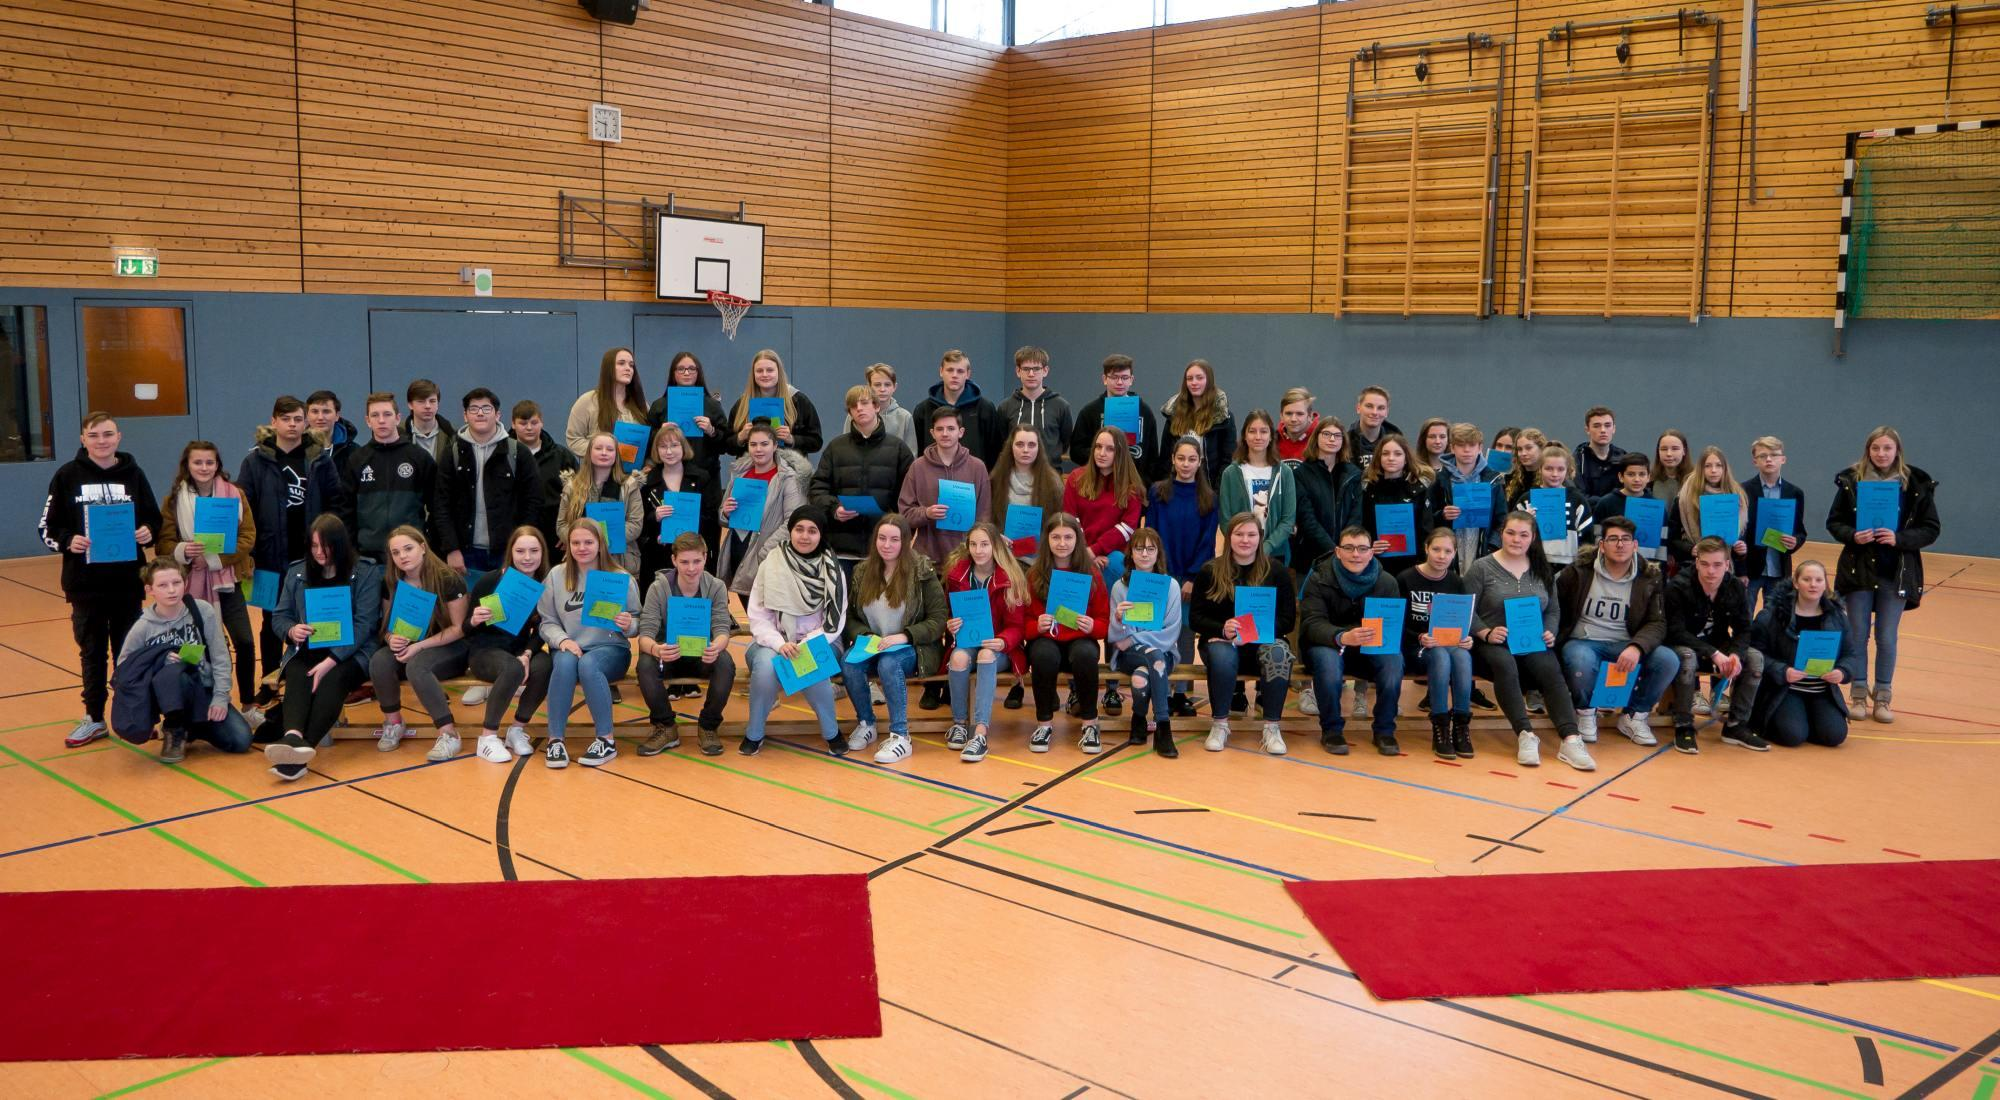 Roter Teppich Januar 2019